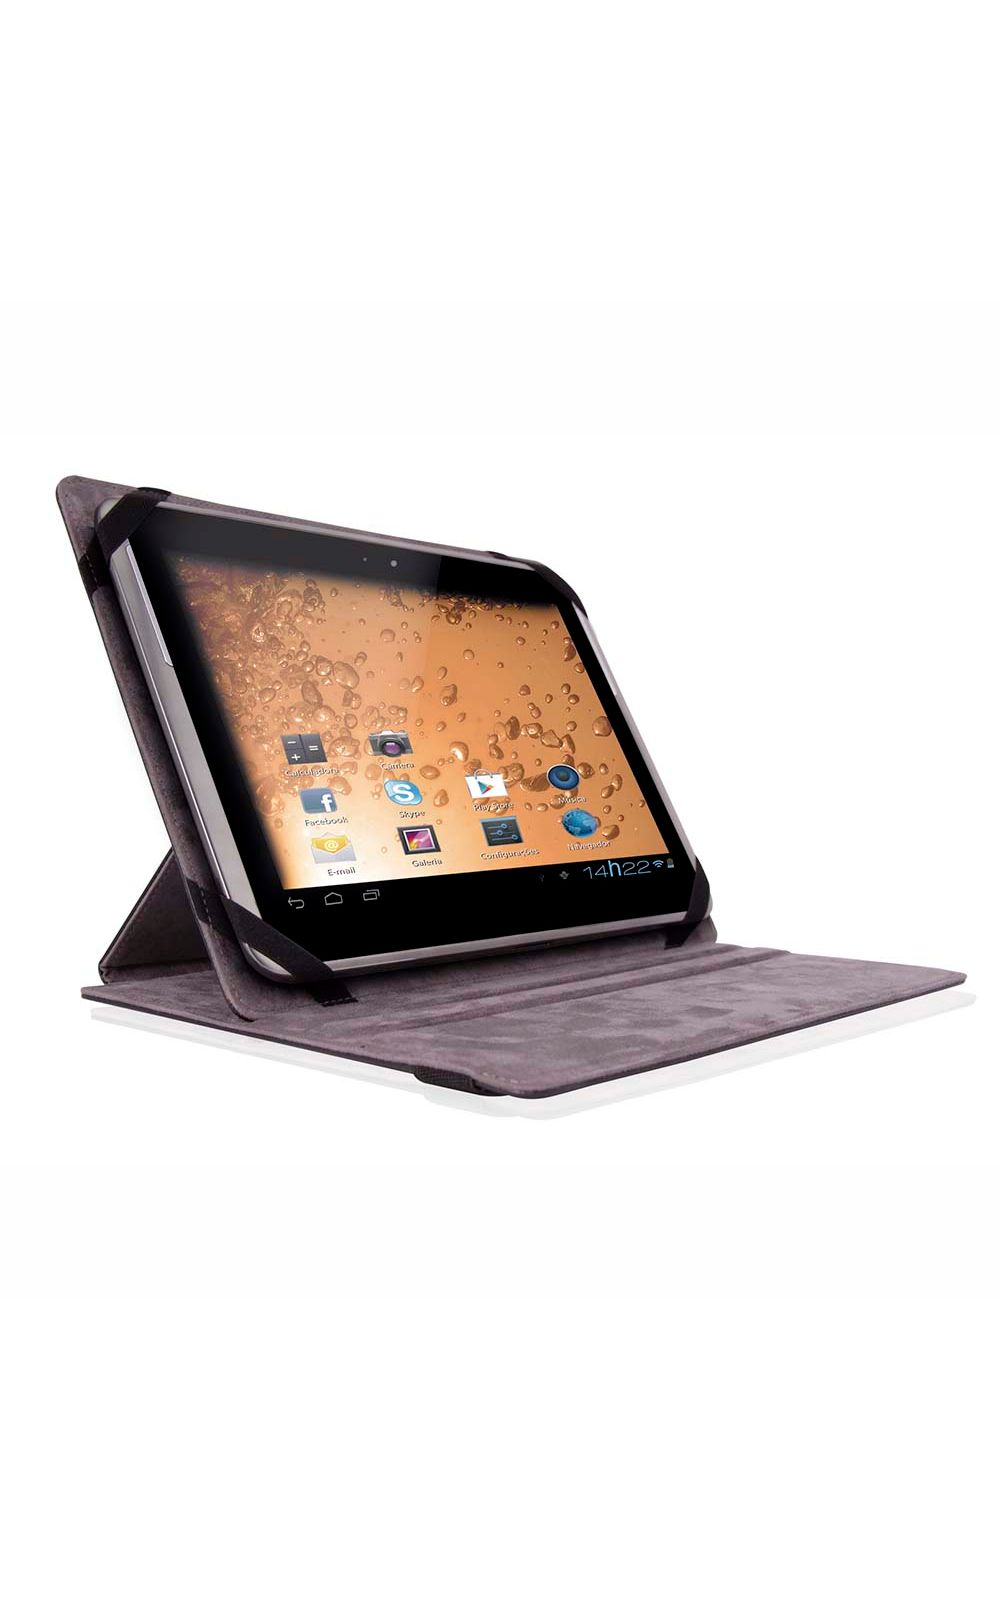 Foto 1 - Capa Tablet Smart Multilaser Cover 9.7 Pol. Preto - BO193